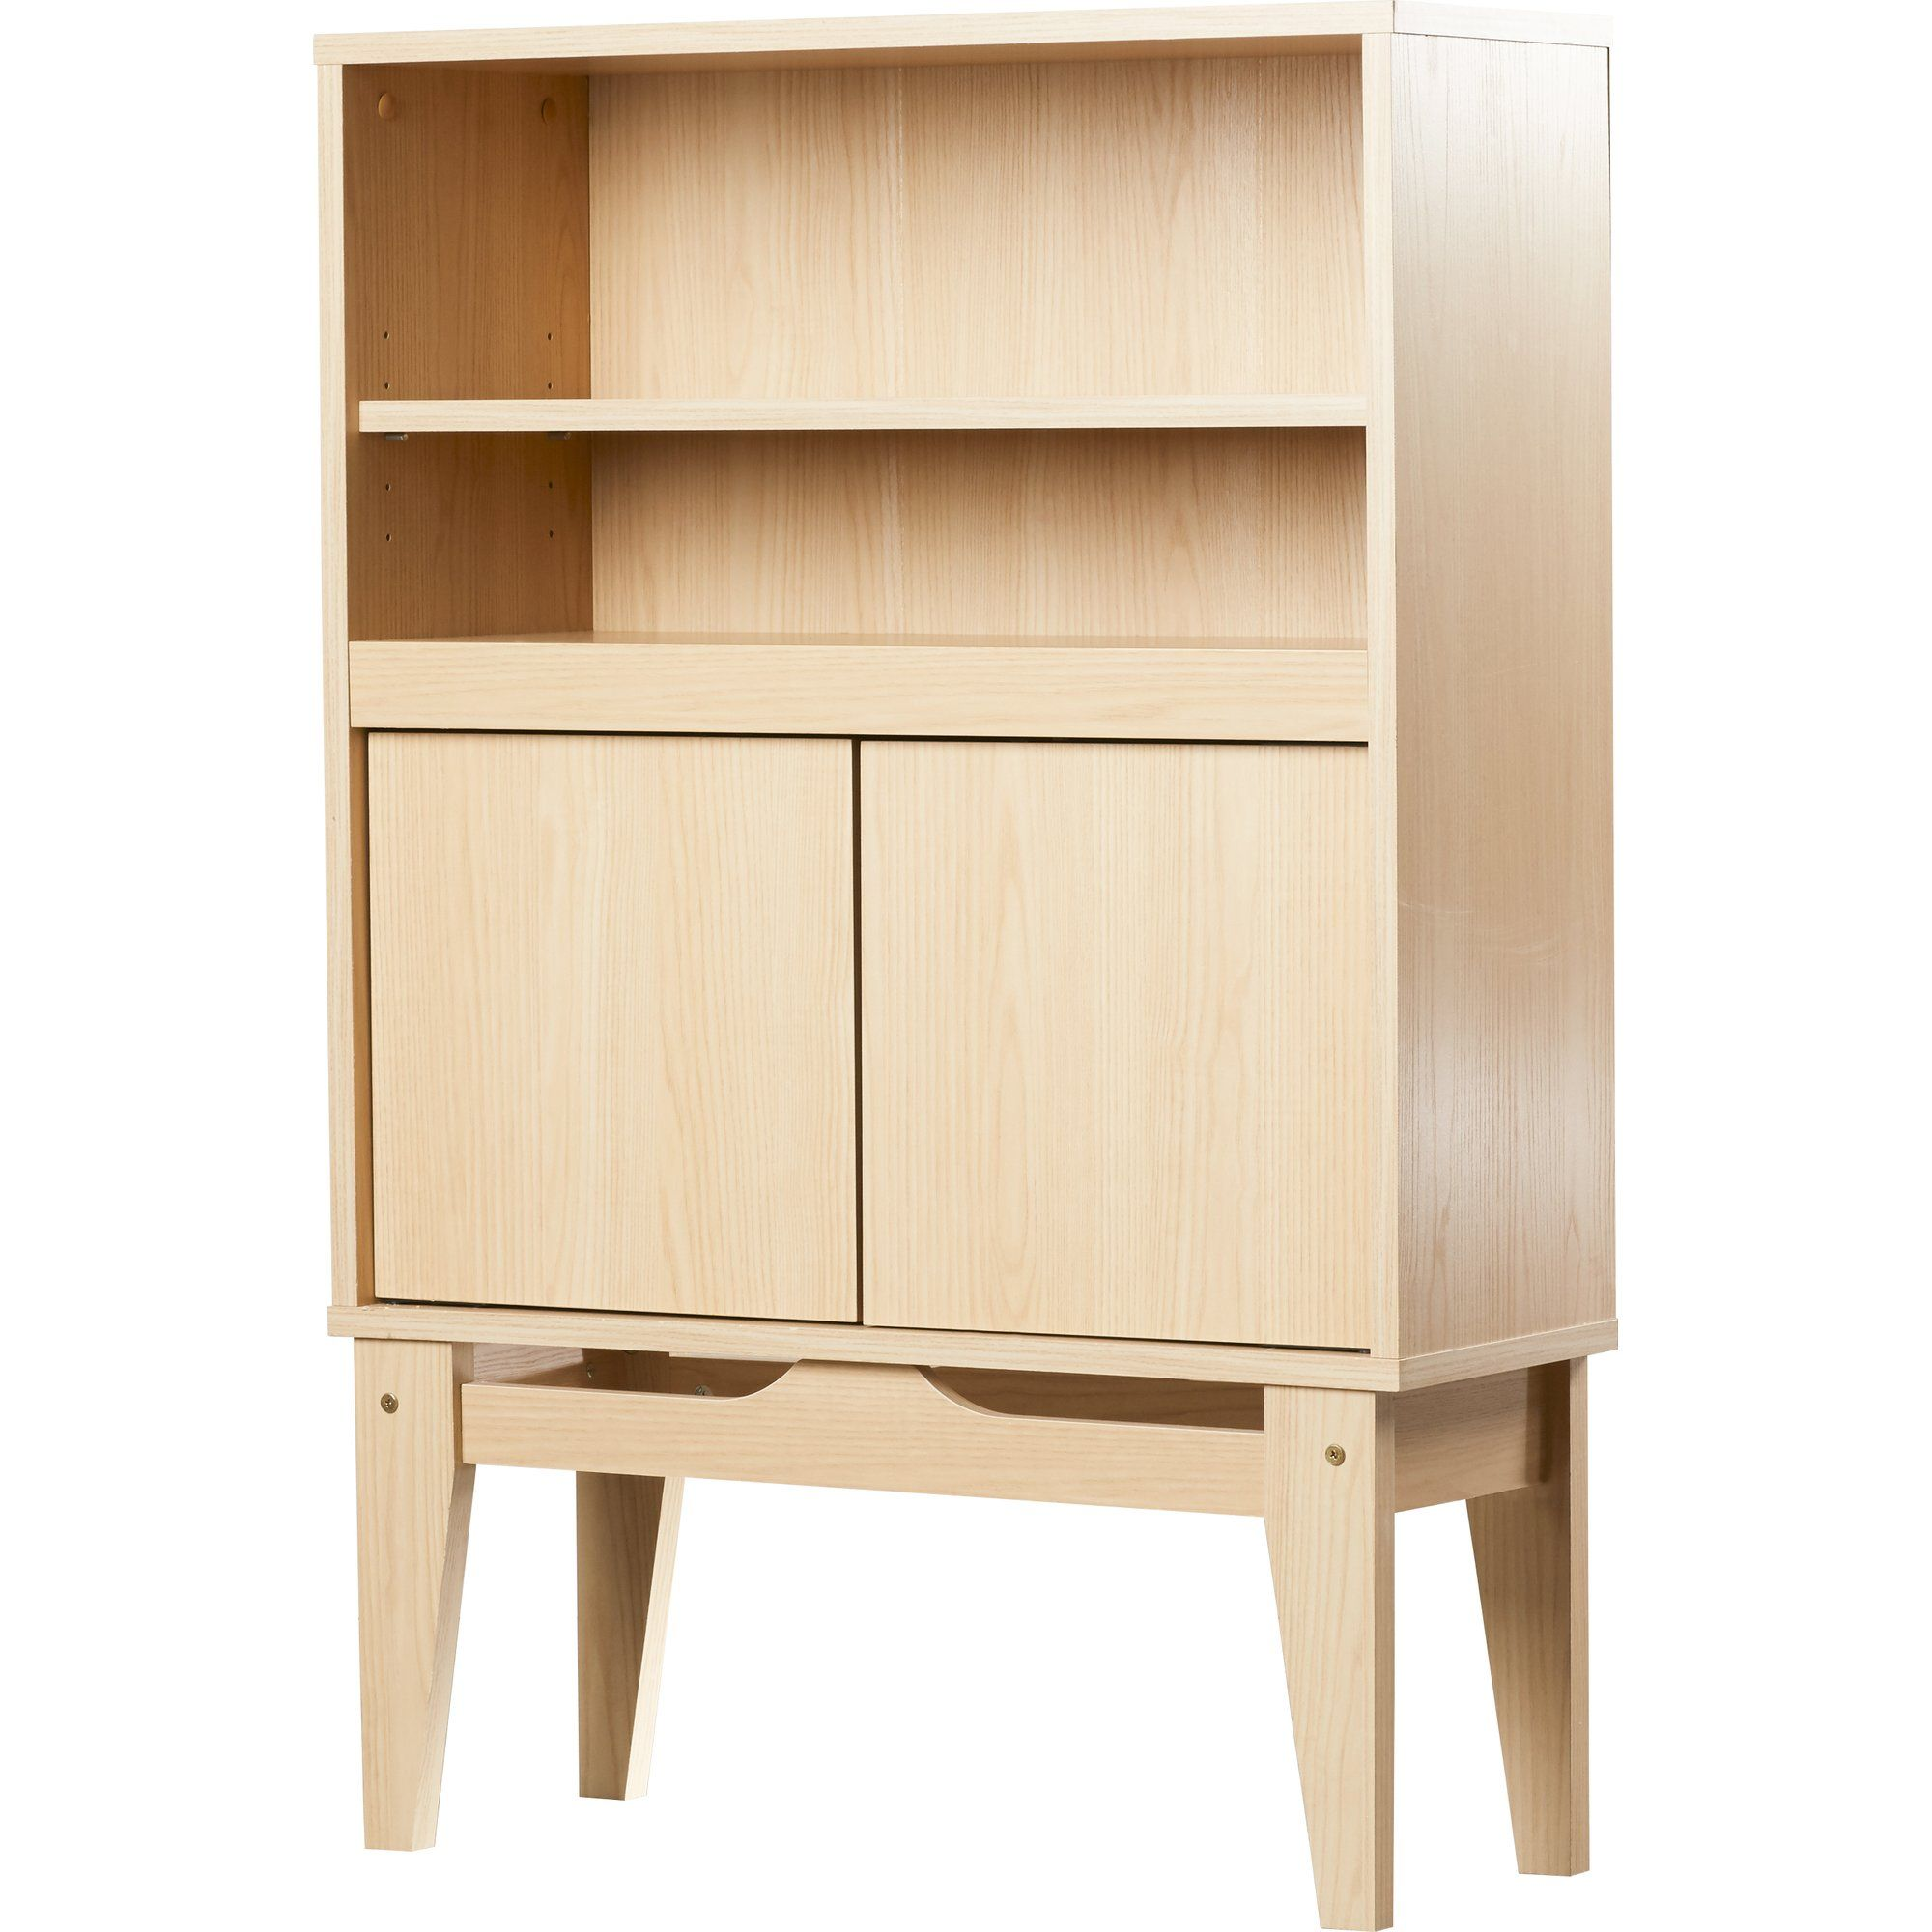 Eke out more space stylish storage cabinets for small living rooms